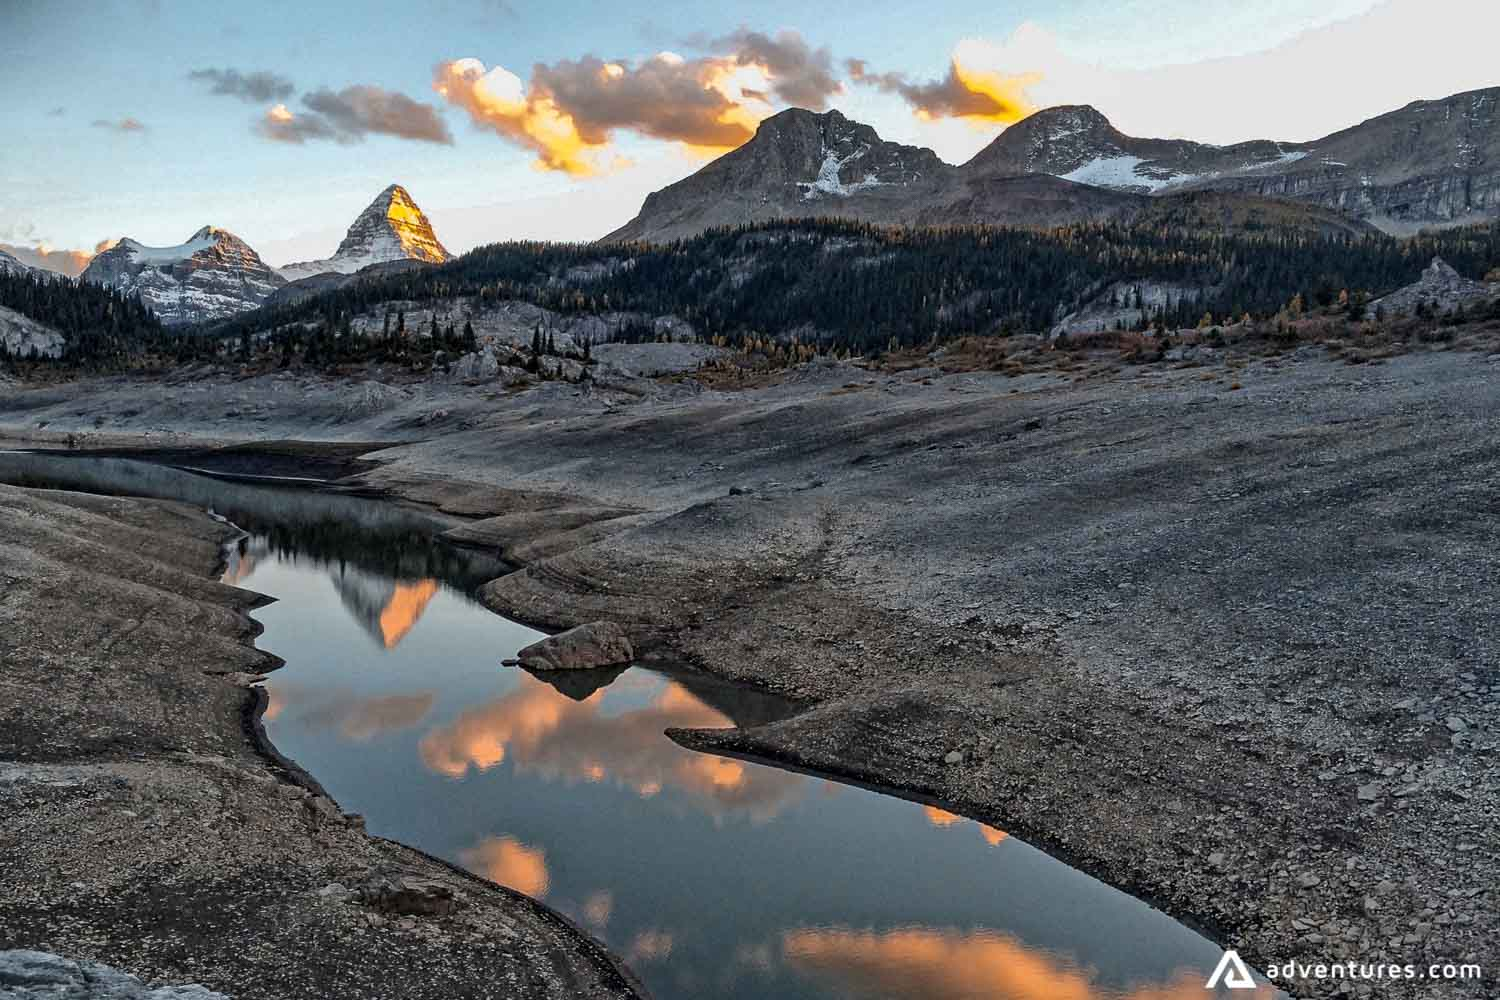 River with a view to Mt. Assiniboine